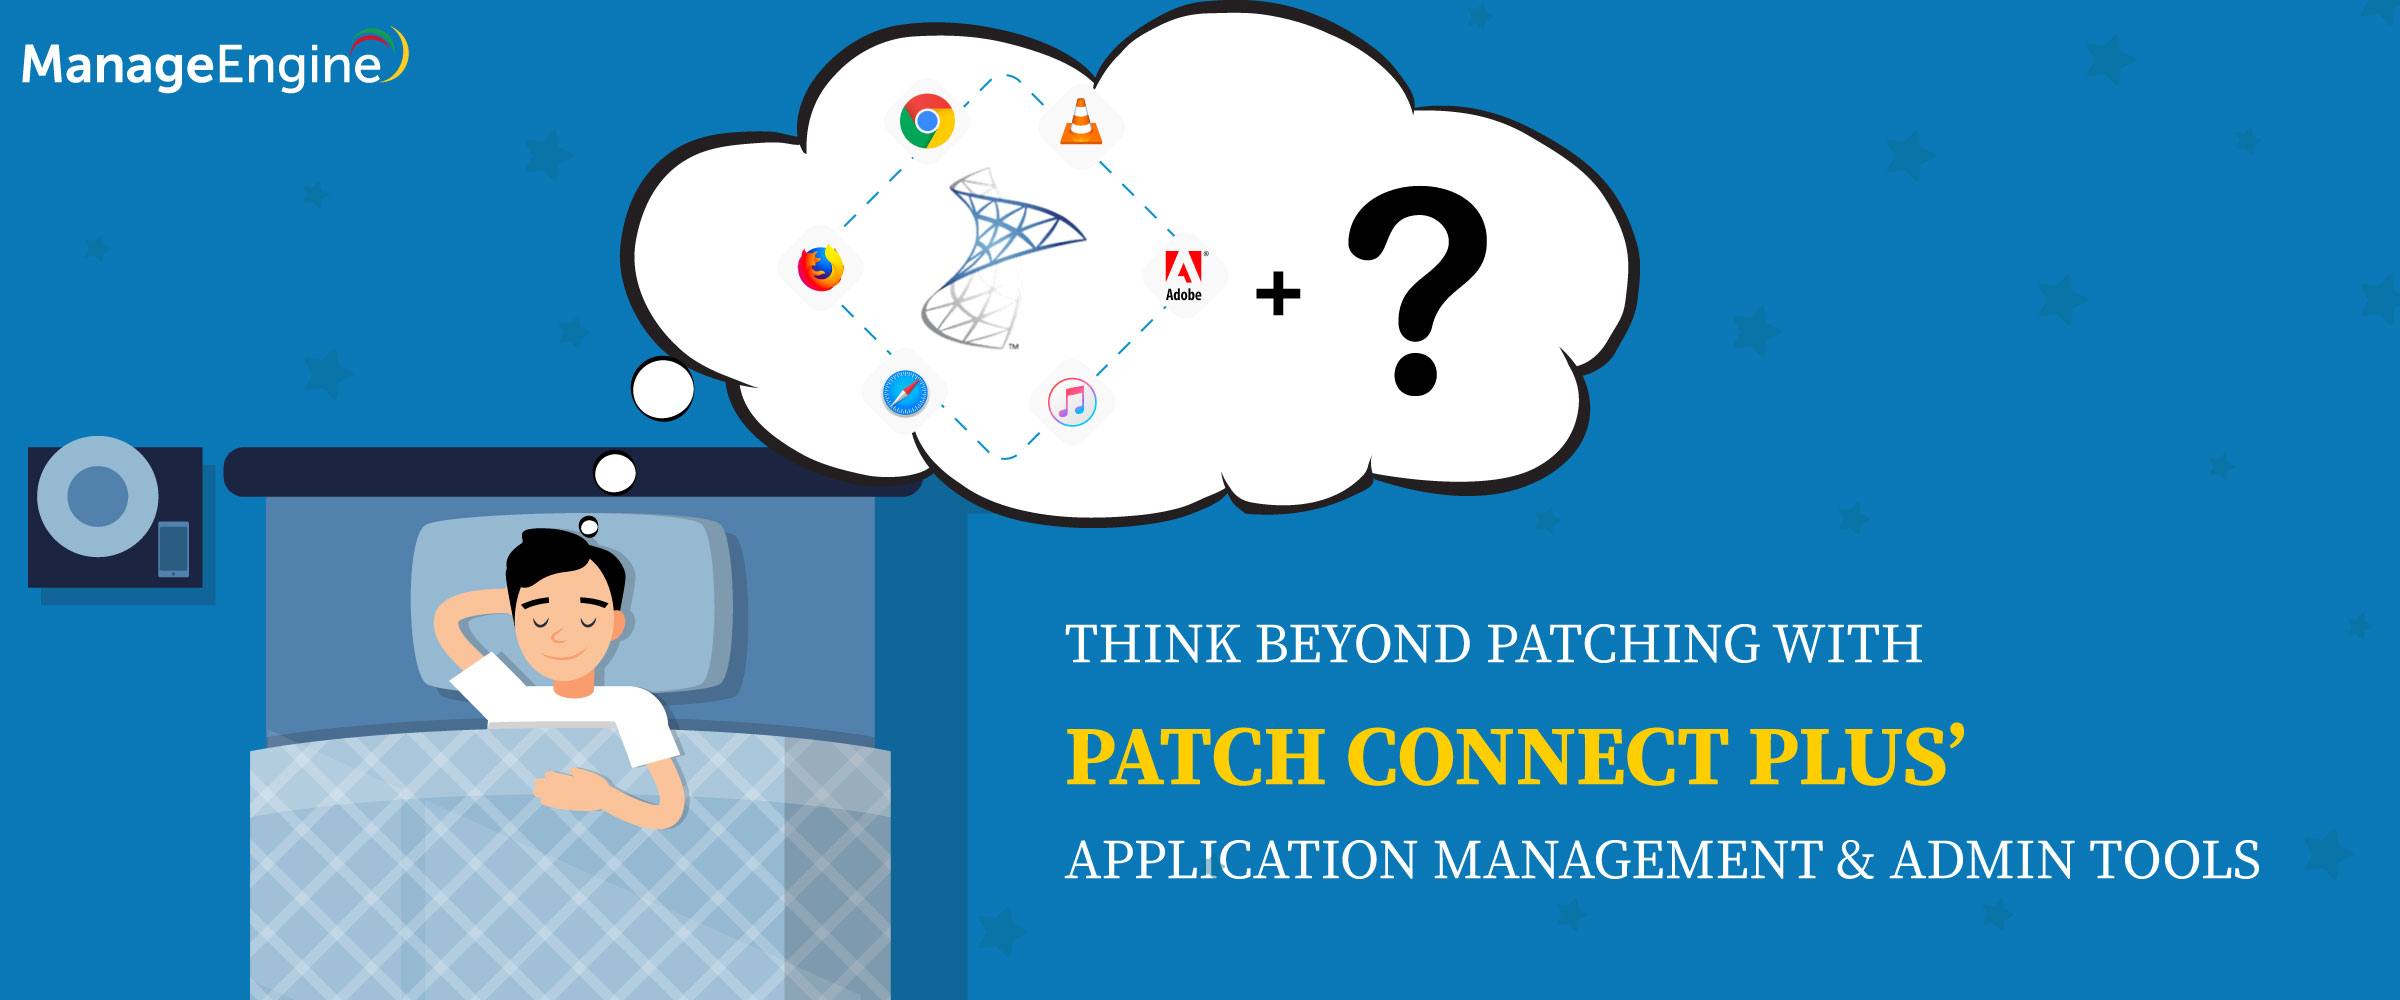 Redefine SCCM patching with Patch Connect Plus' Application Management and Admin Tools